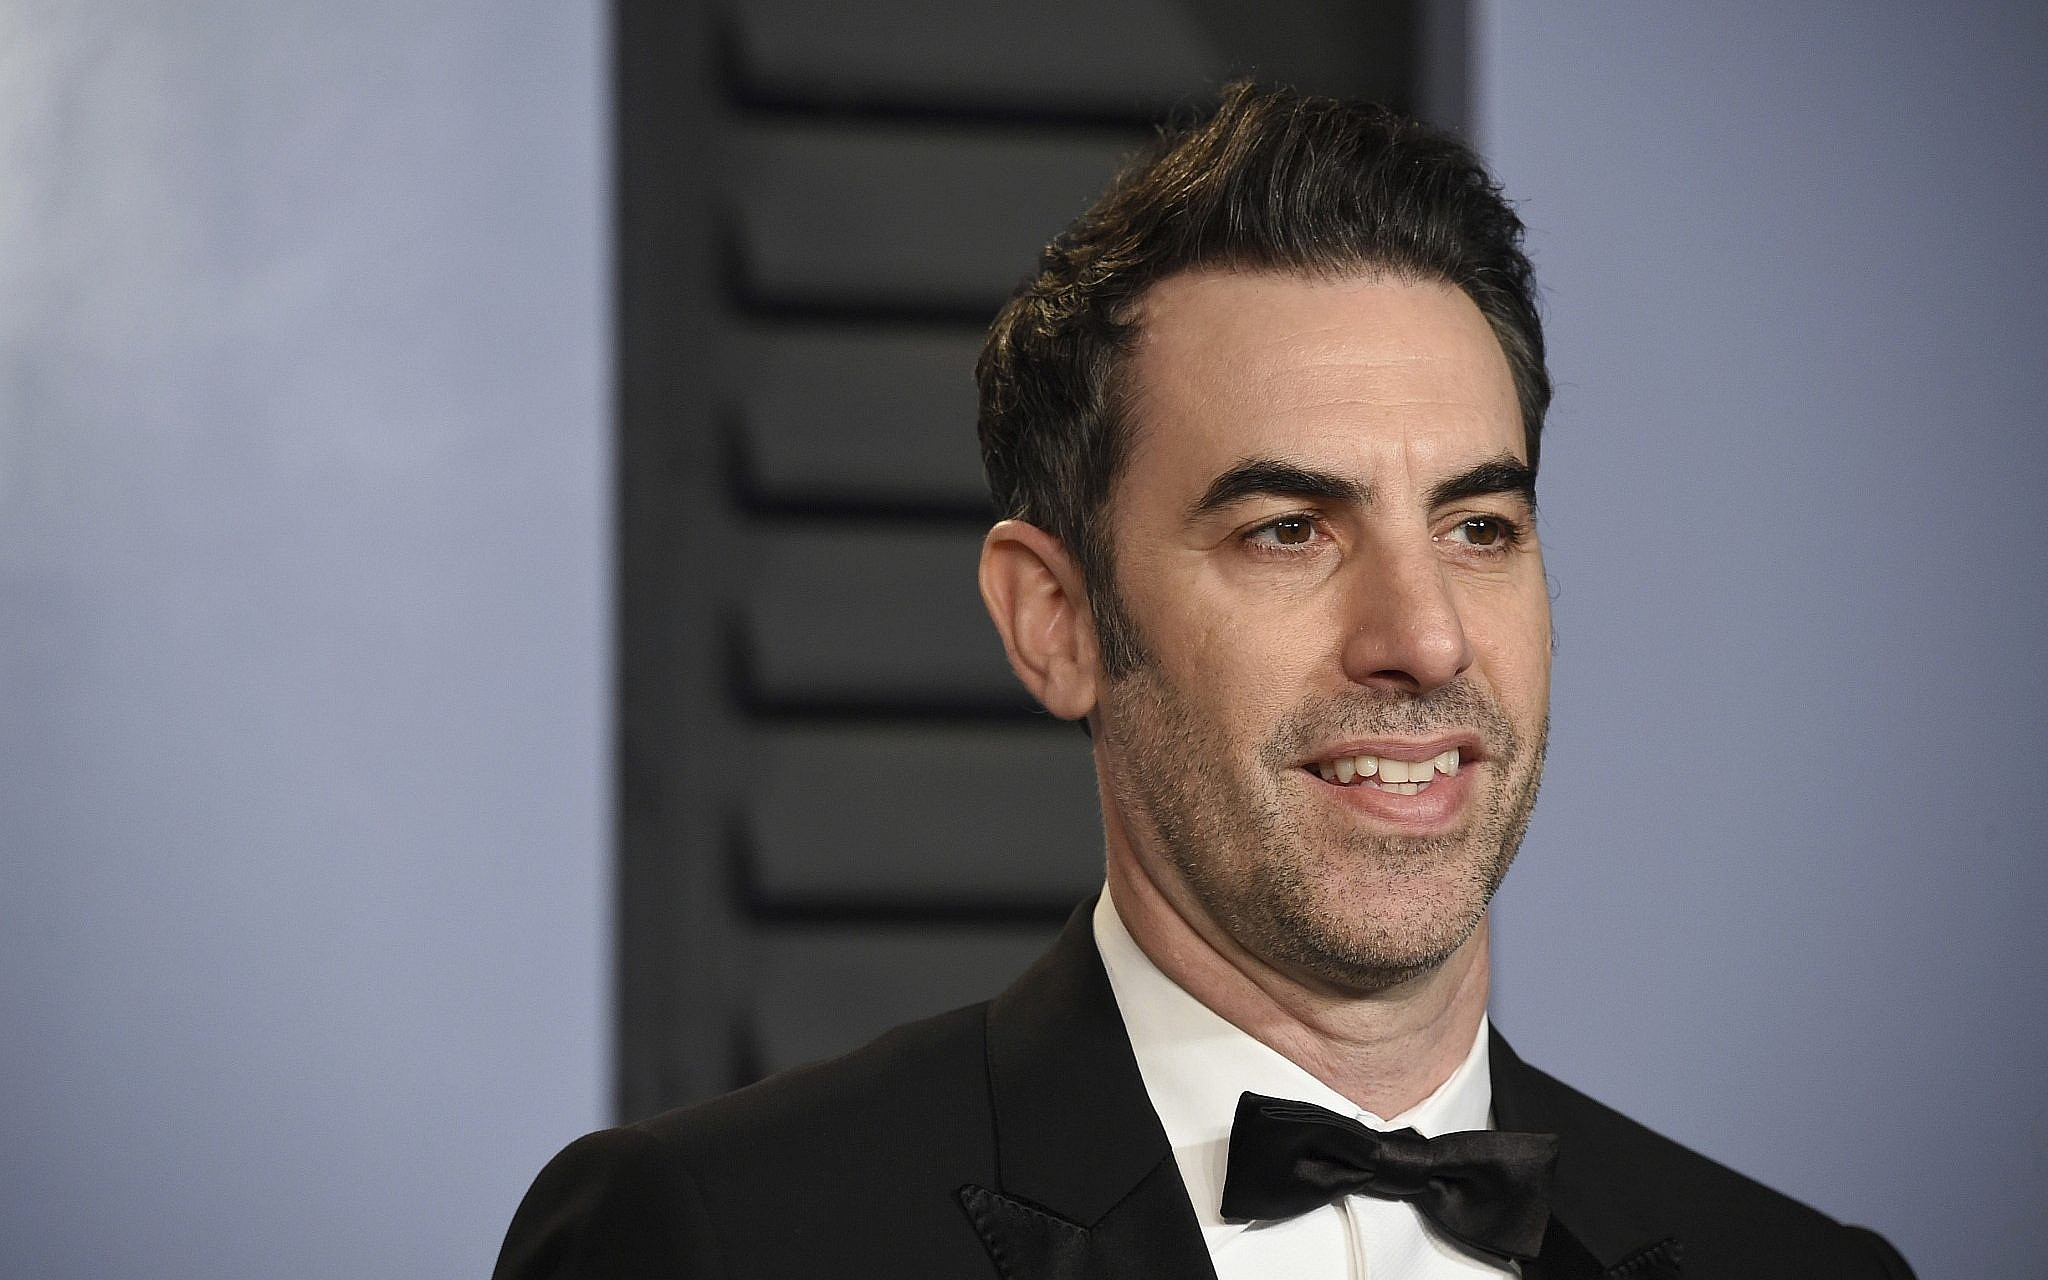 Sacha Baron Cohen reveals promo, premiere date for new Showtime series